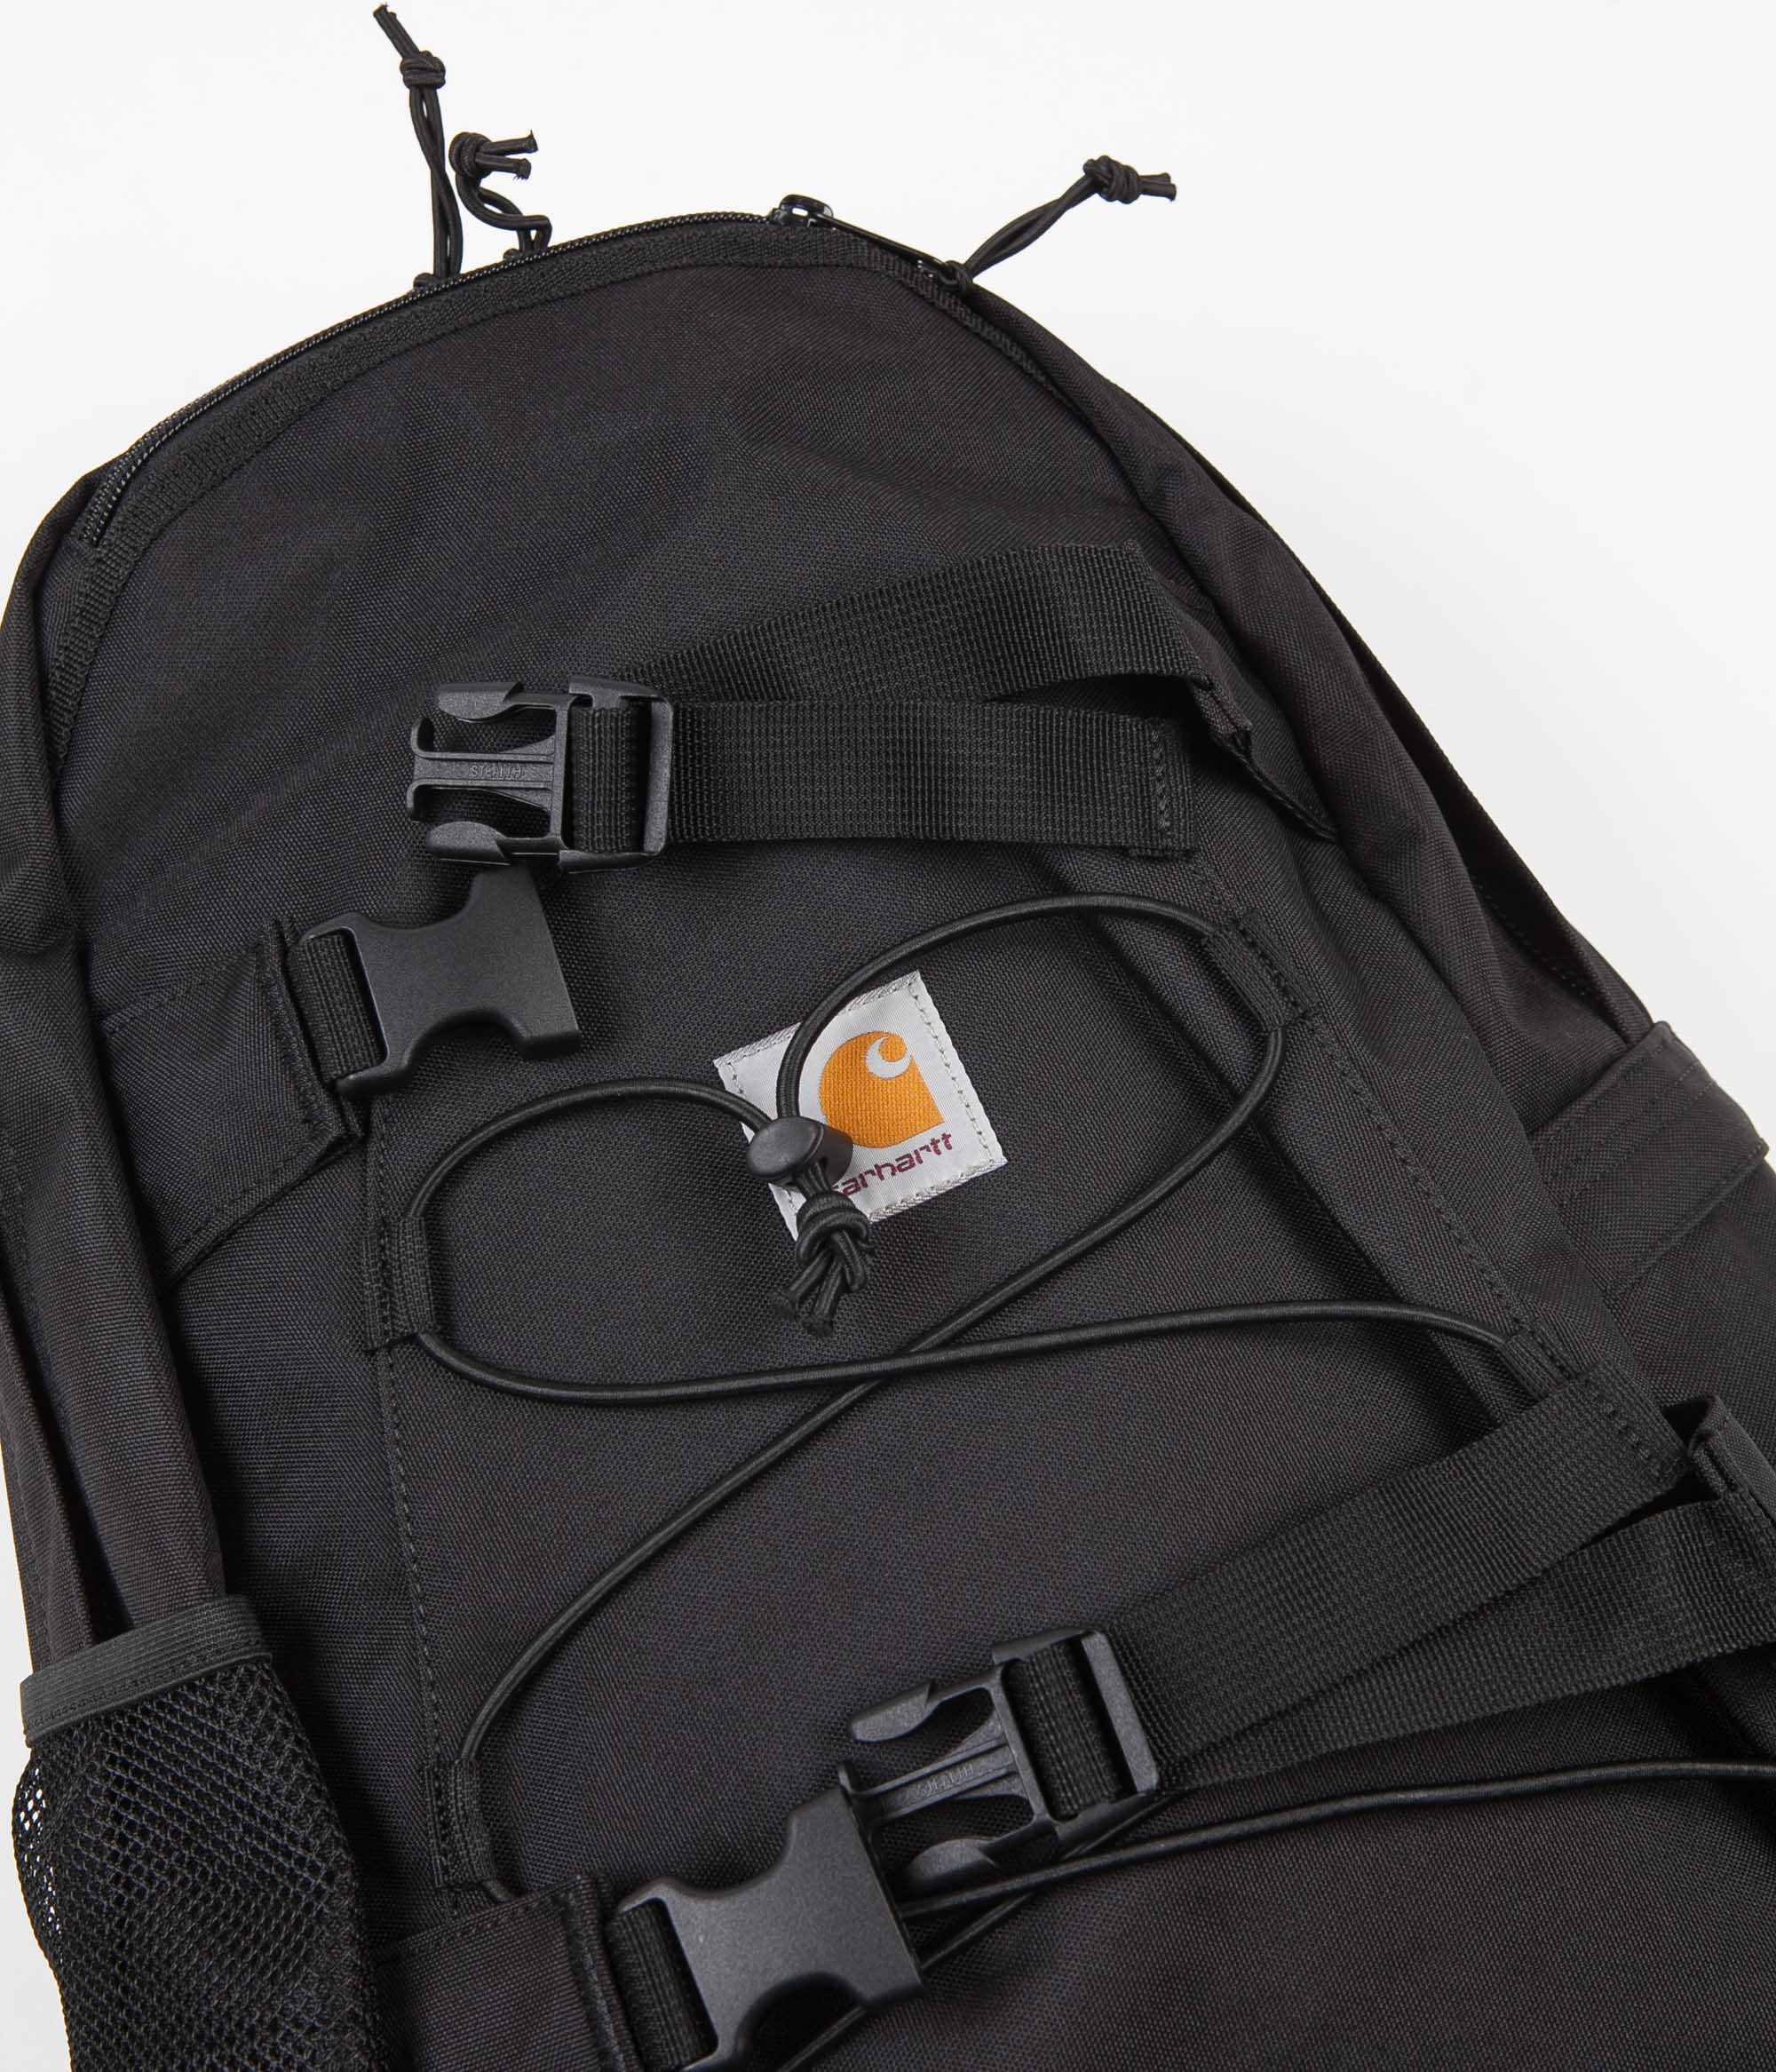 Carhartt Kickflip Backpack - Black